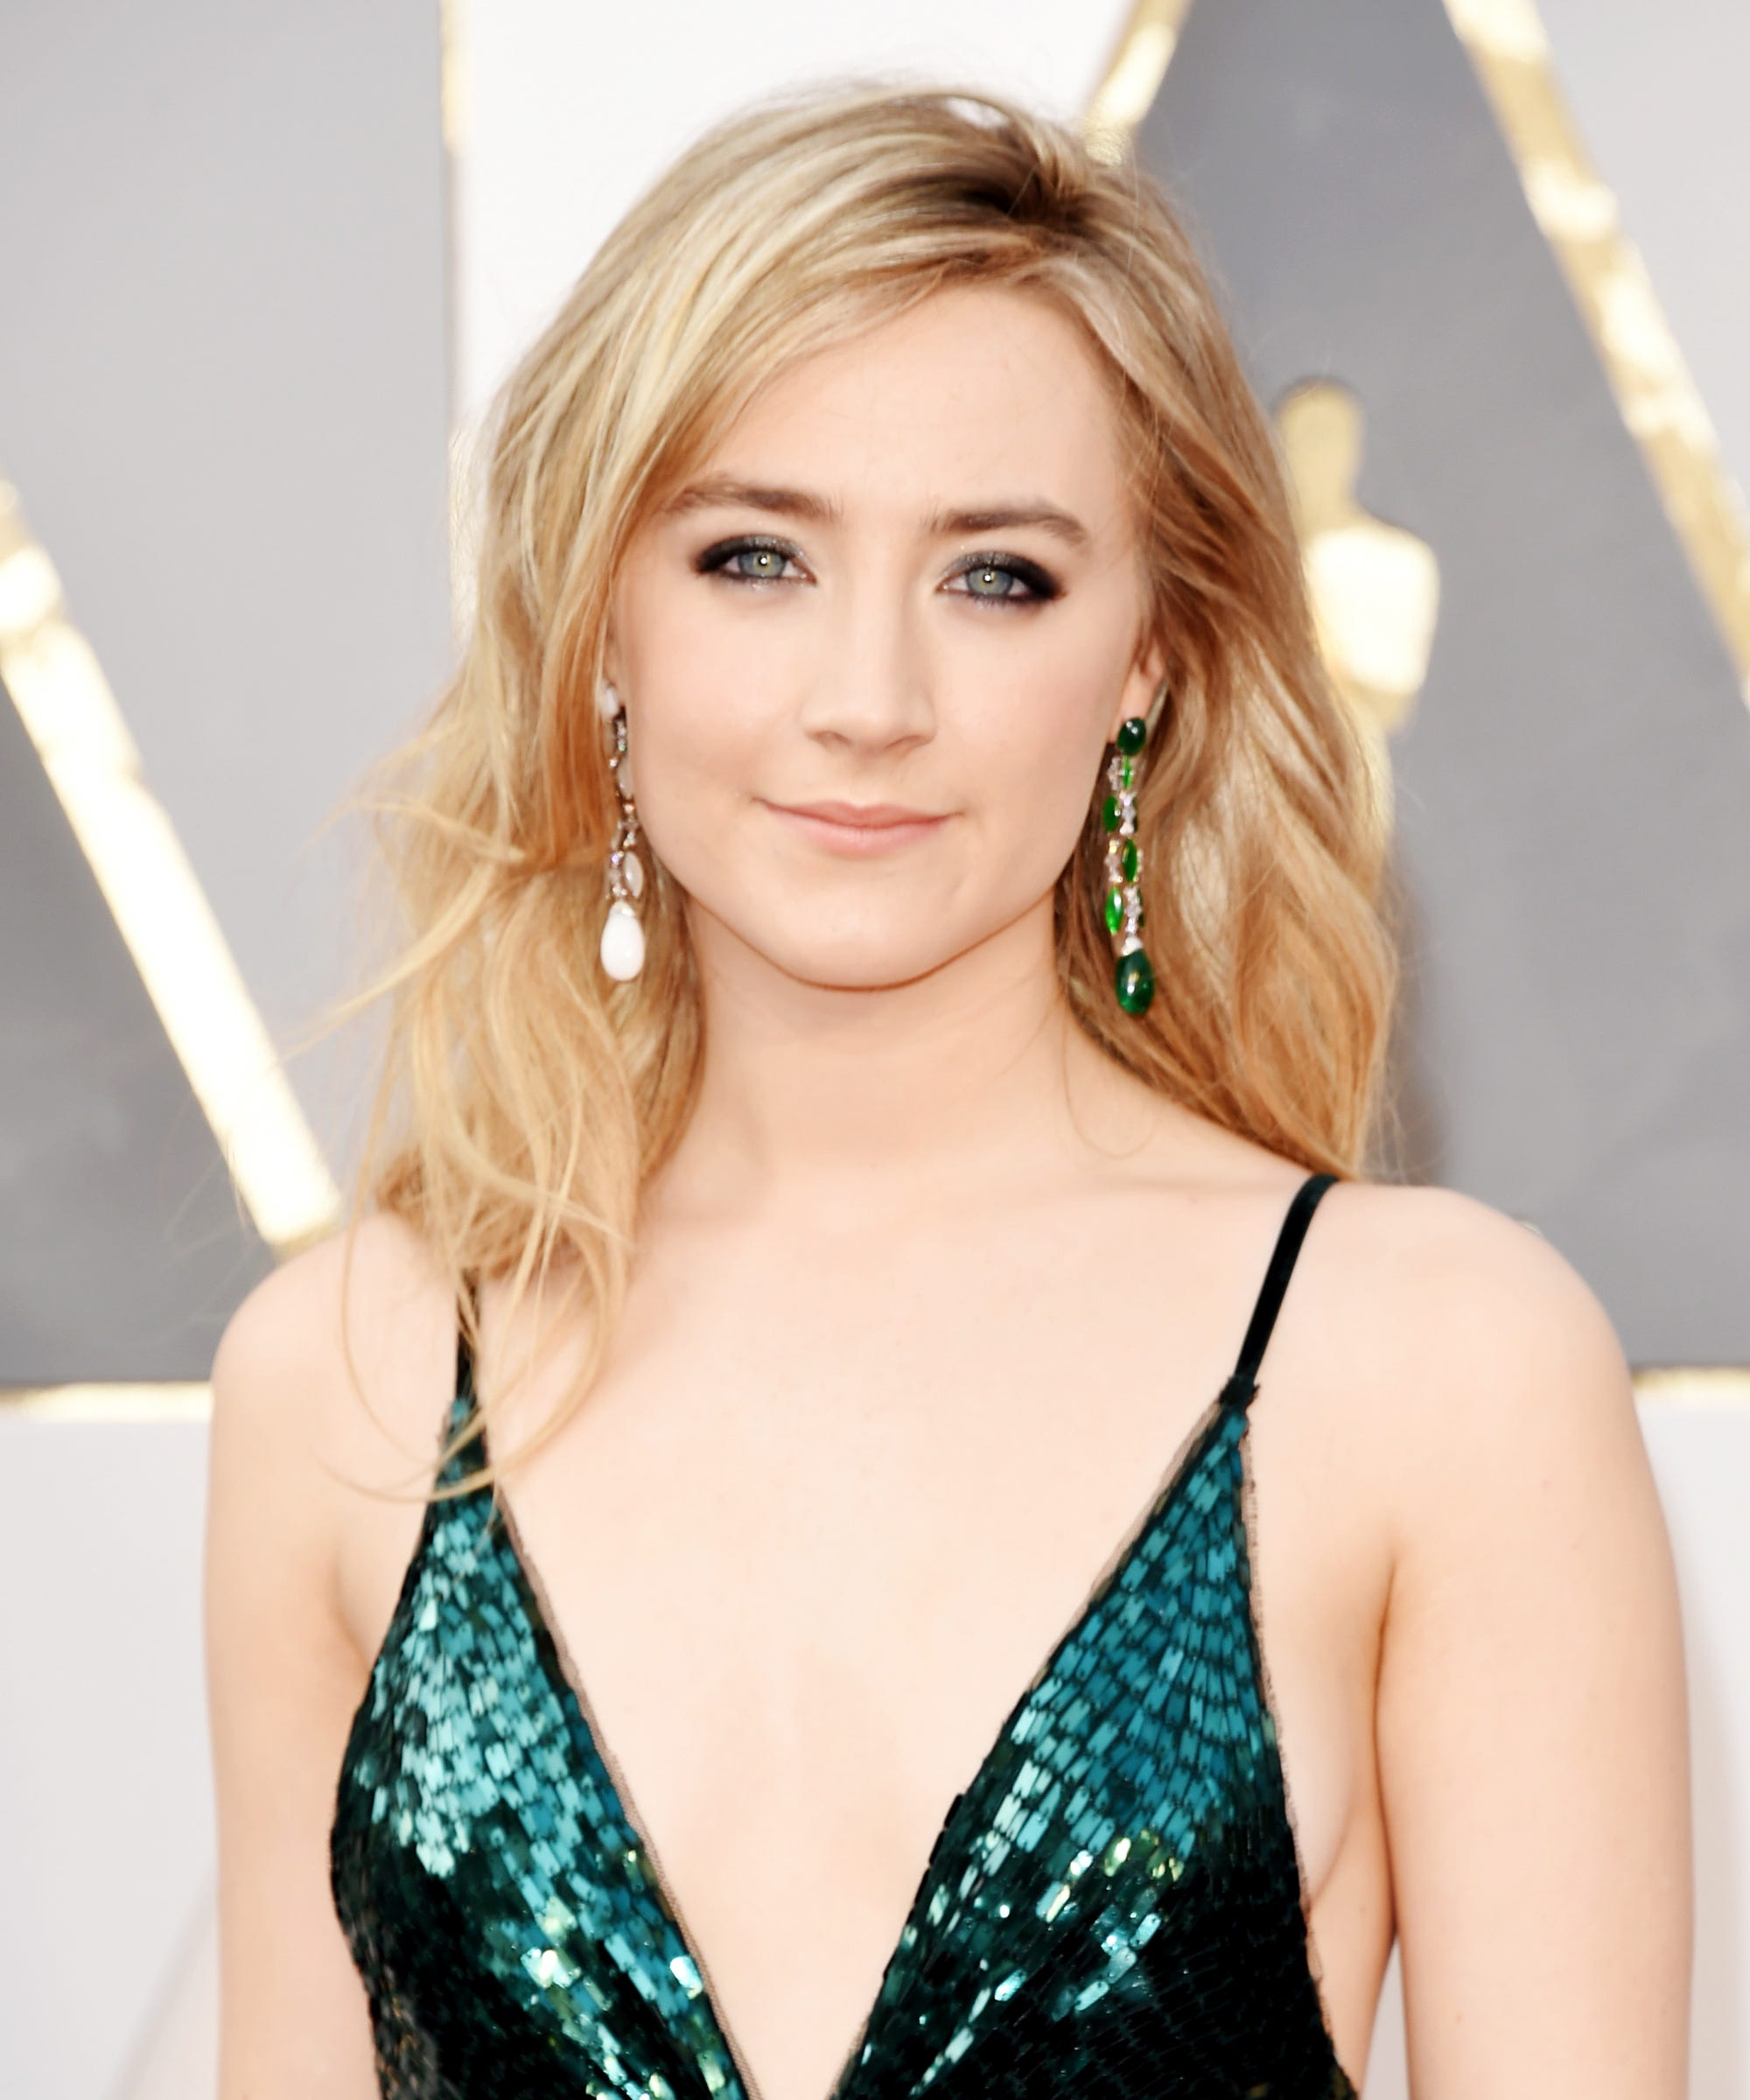 The Best Beauty Looks At The Oscars